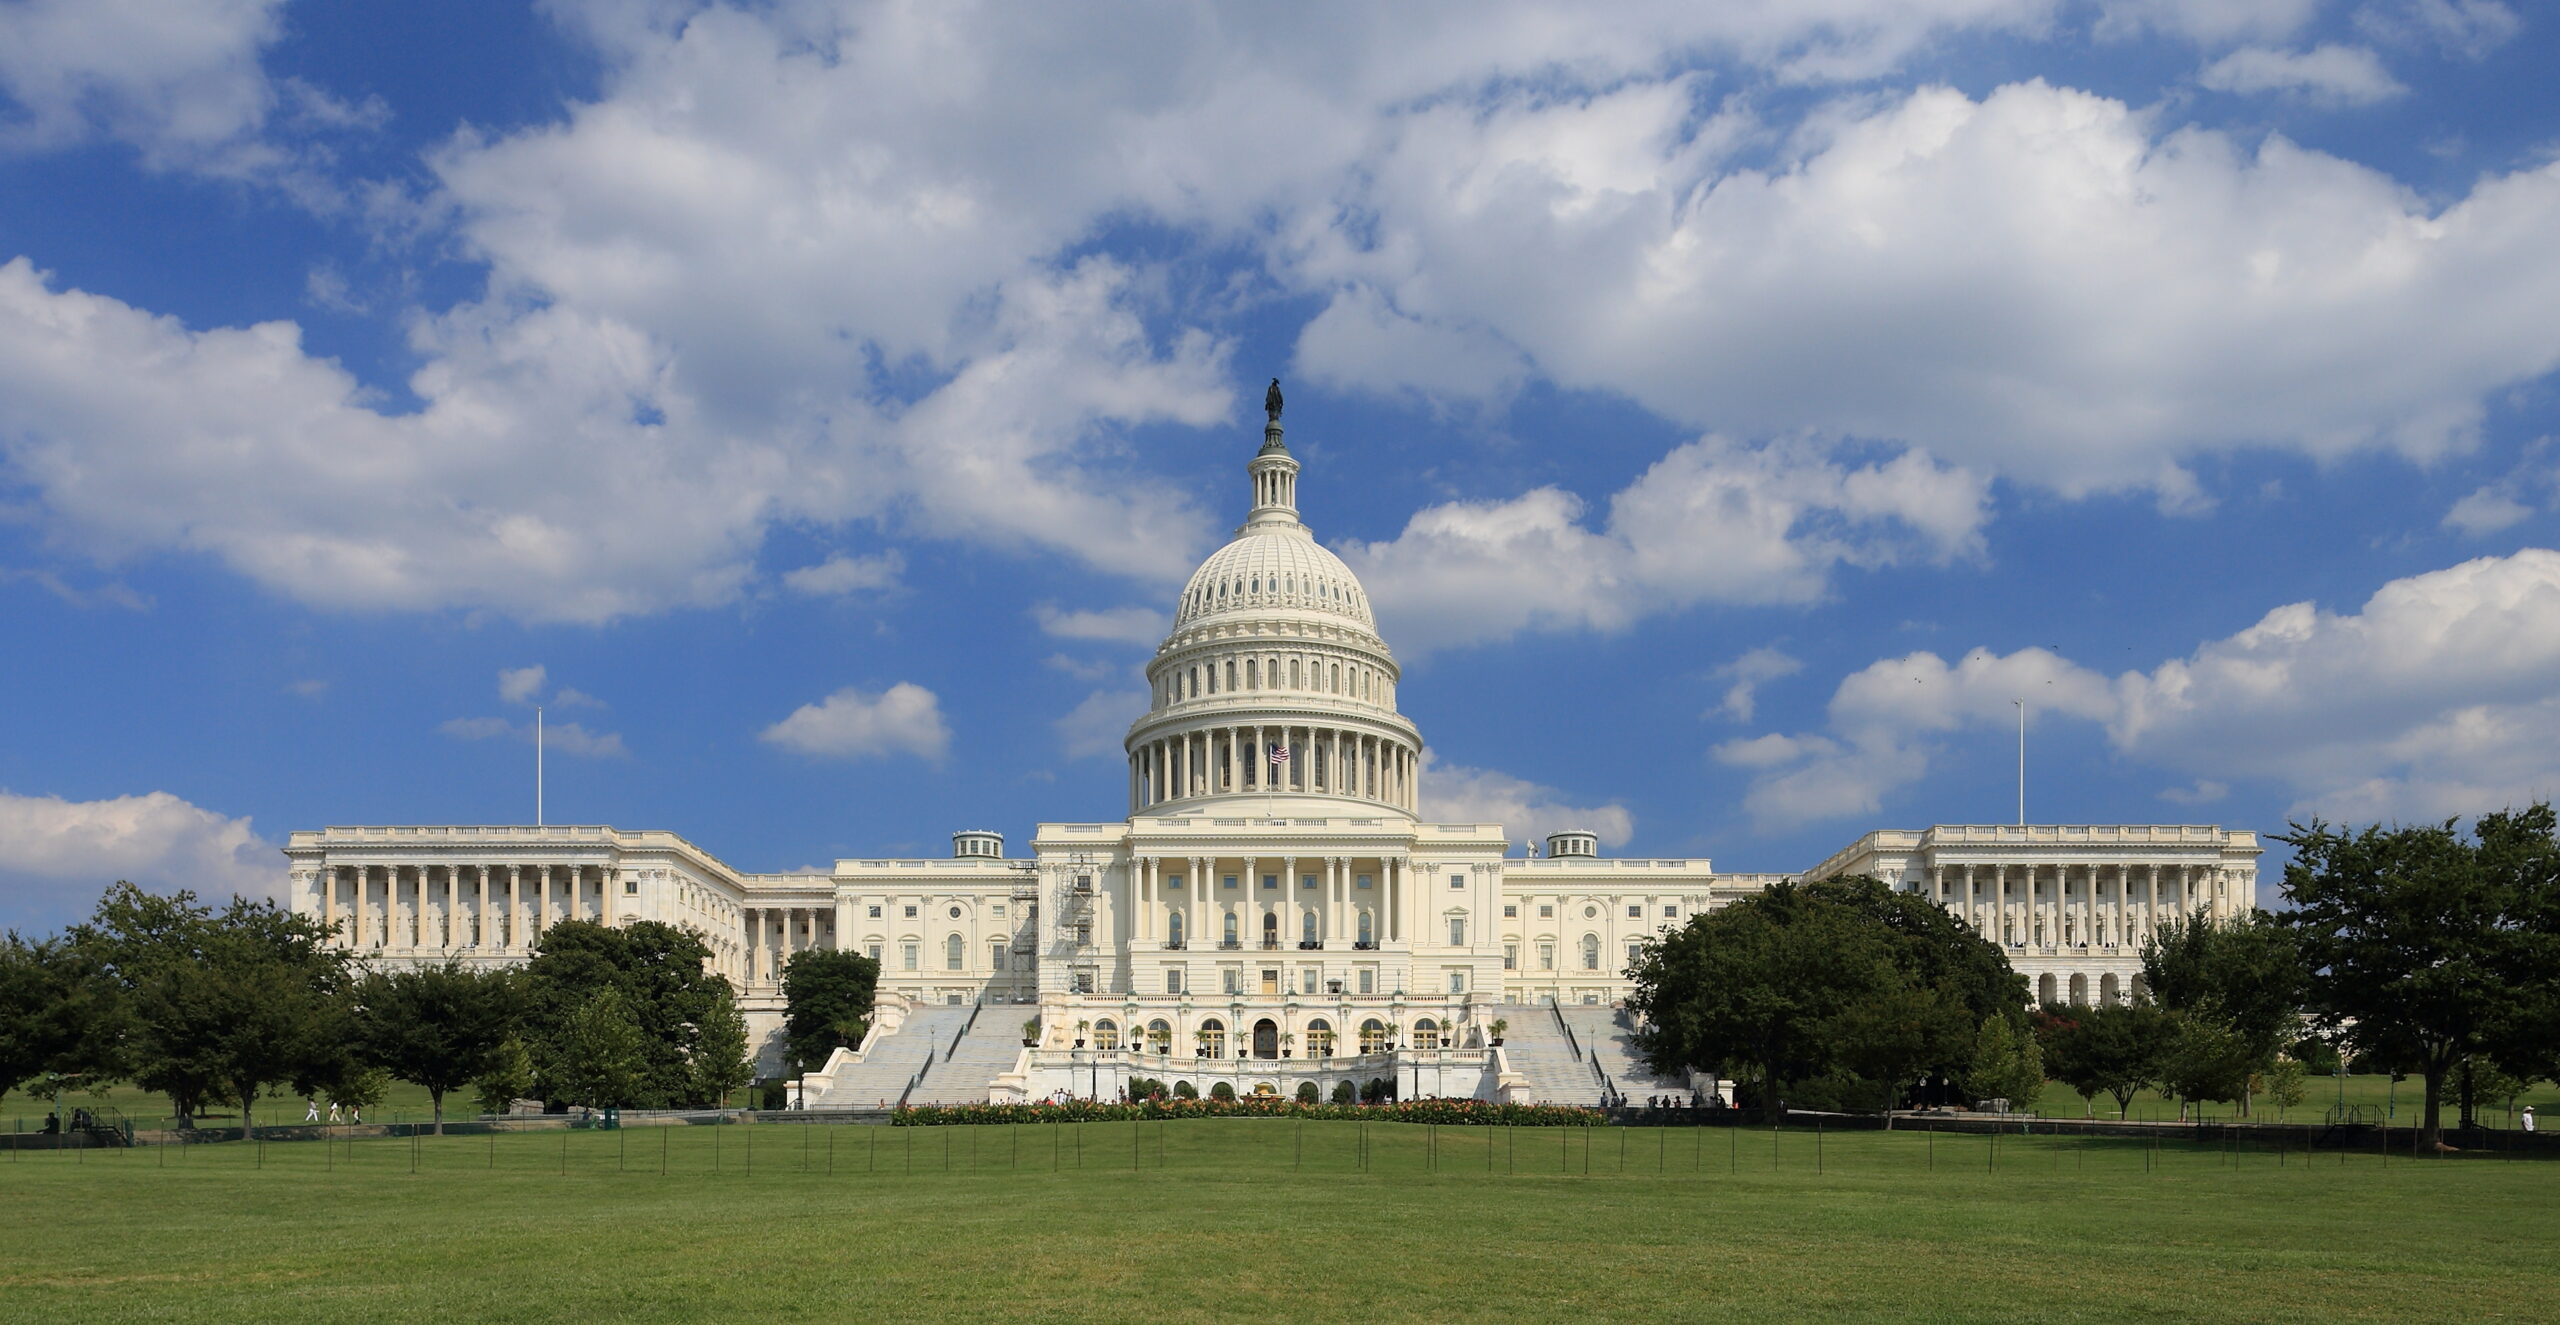 Police: pro-Trump group plans to attack U.S. Capitol today